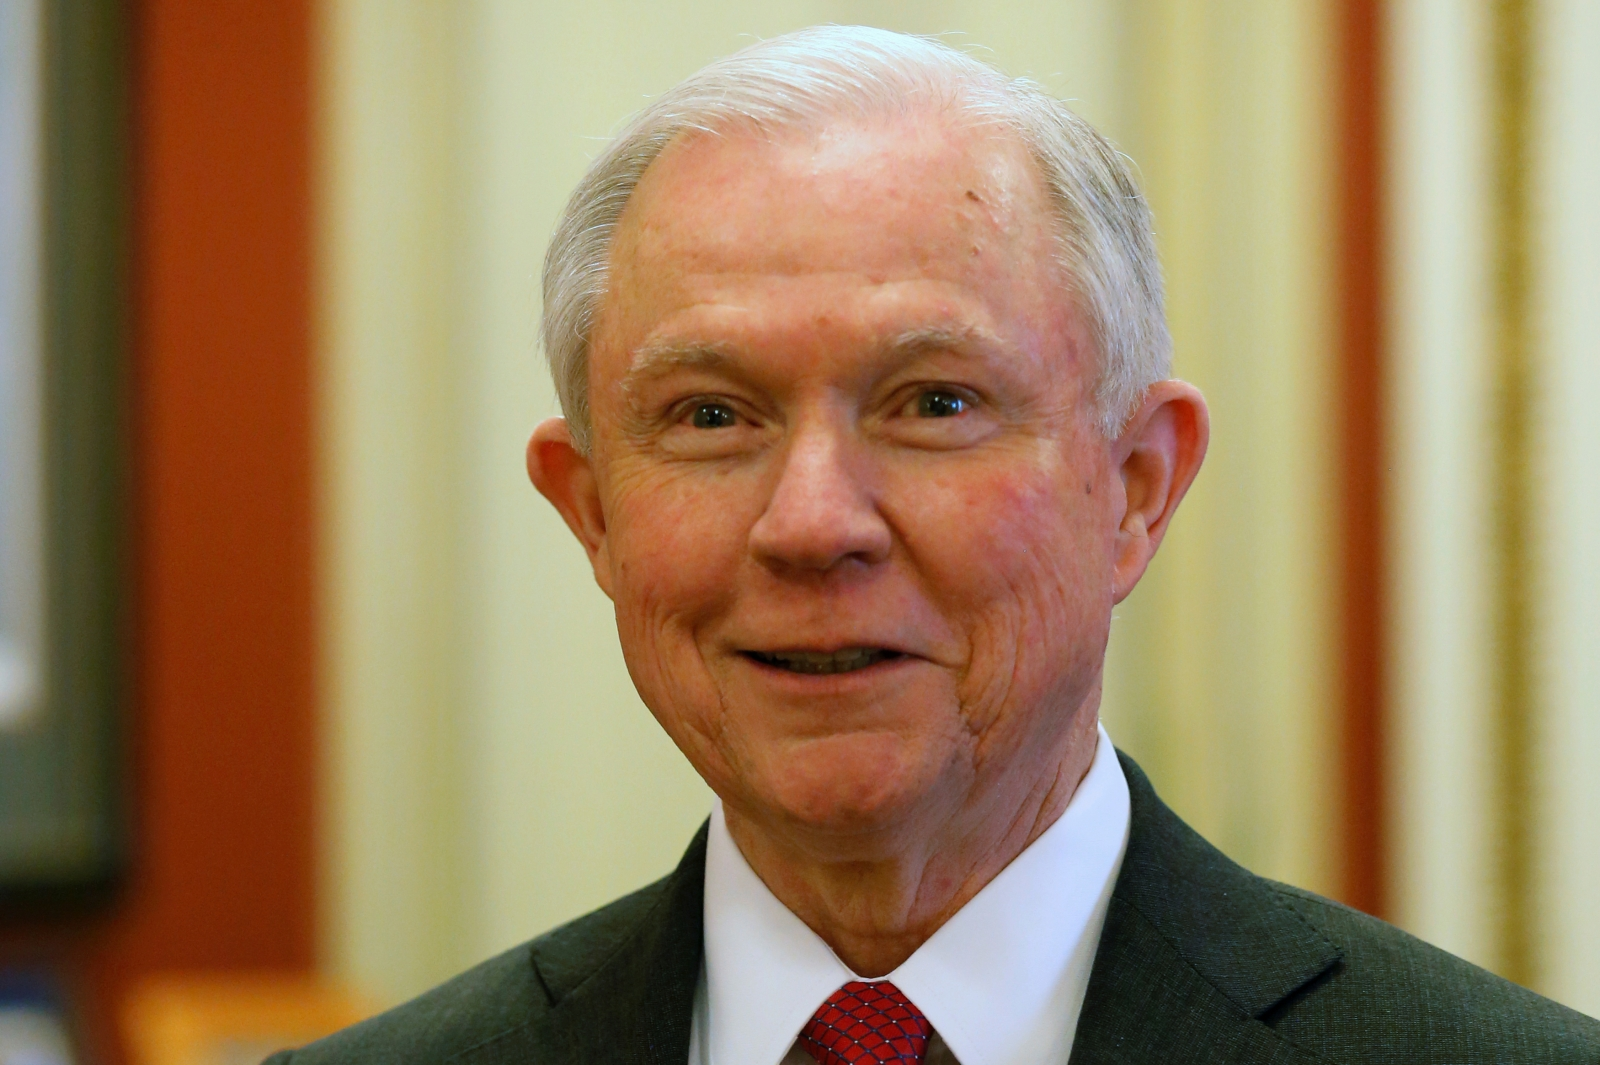 Jeff Sessions confirmation: When will Senate vote on Trump's Attorney General nominee?